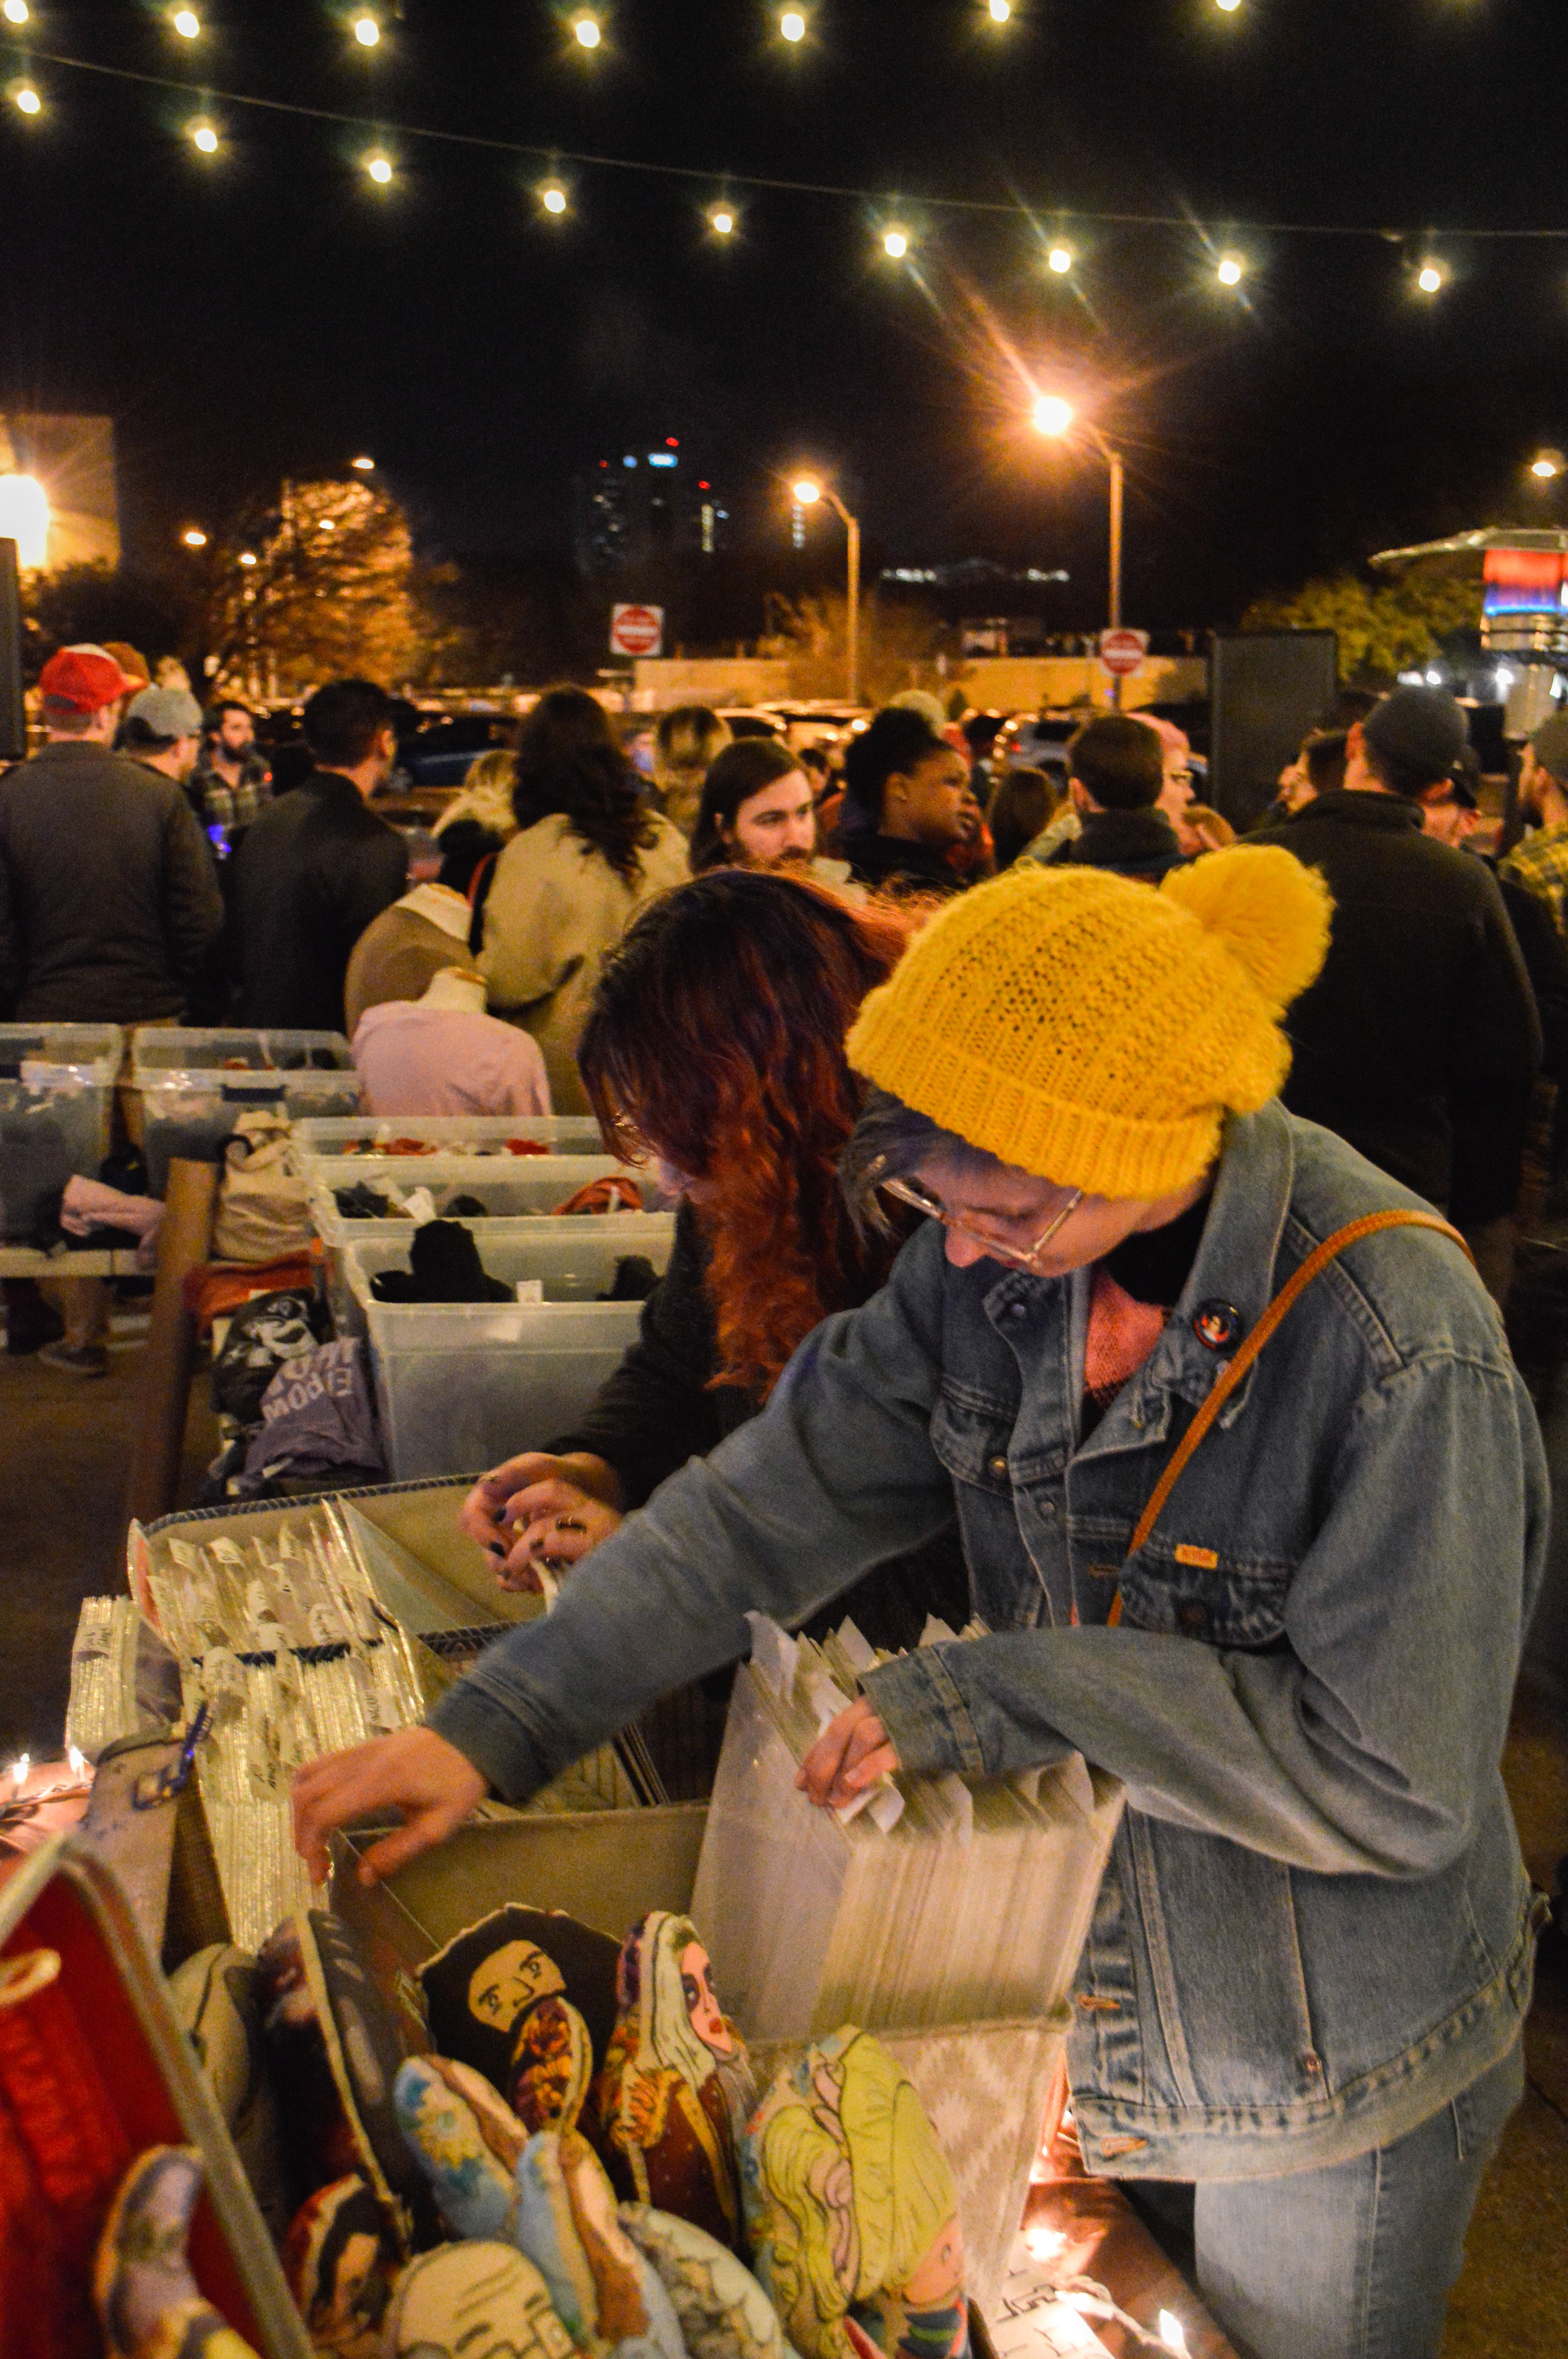 Sifting through the vendors' offerings at Stout and Shout IV